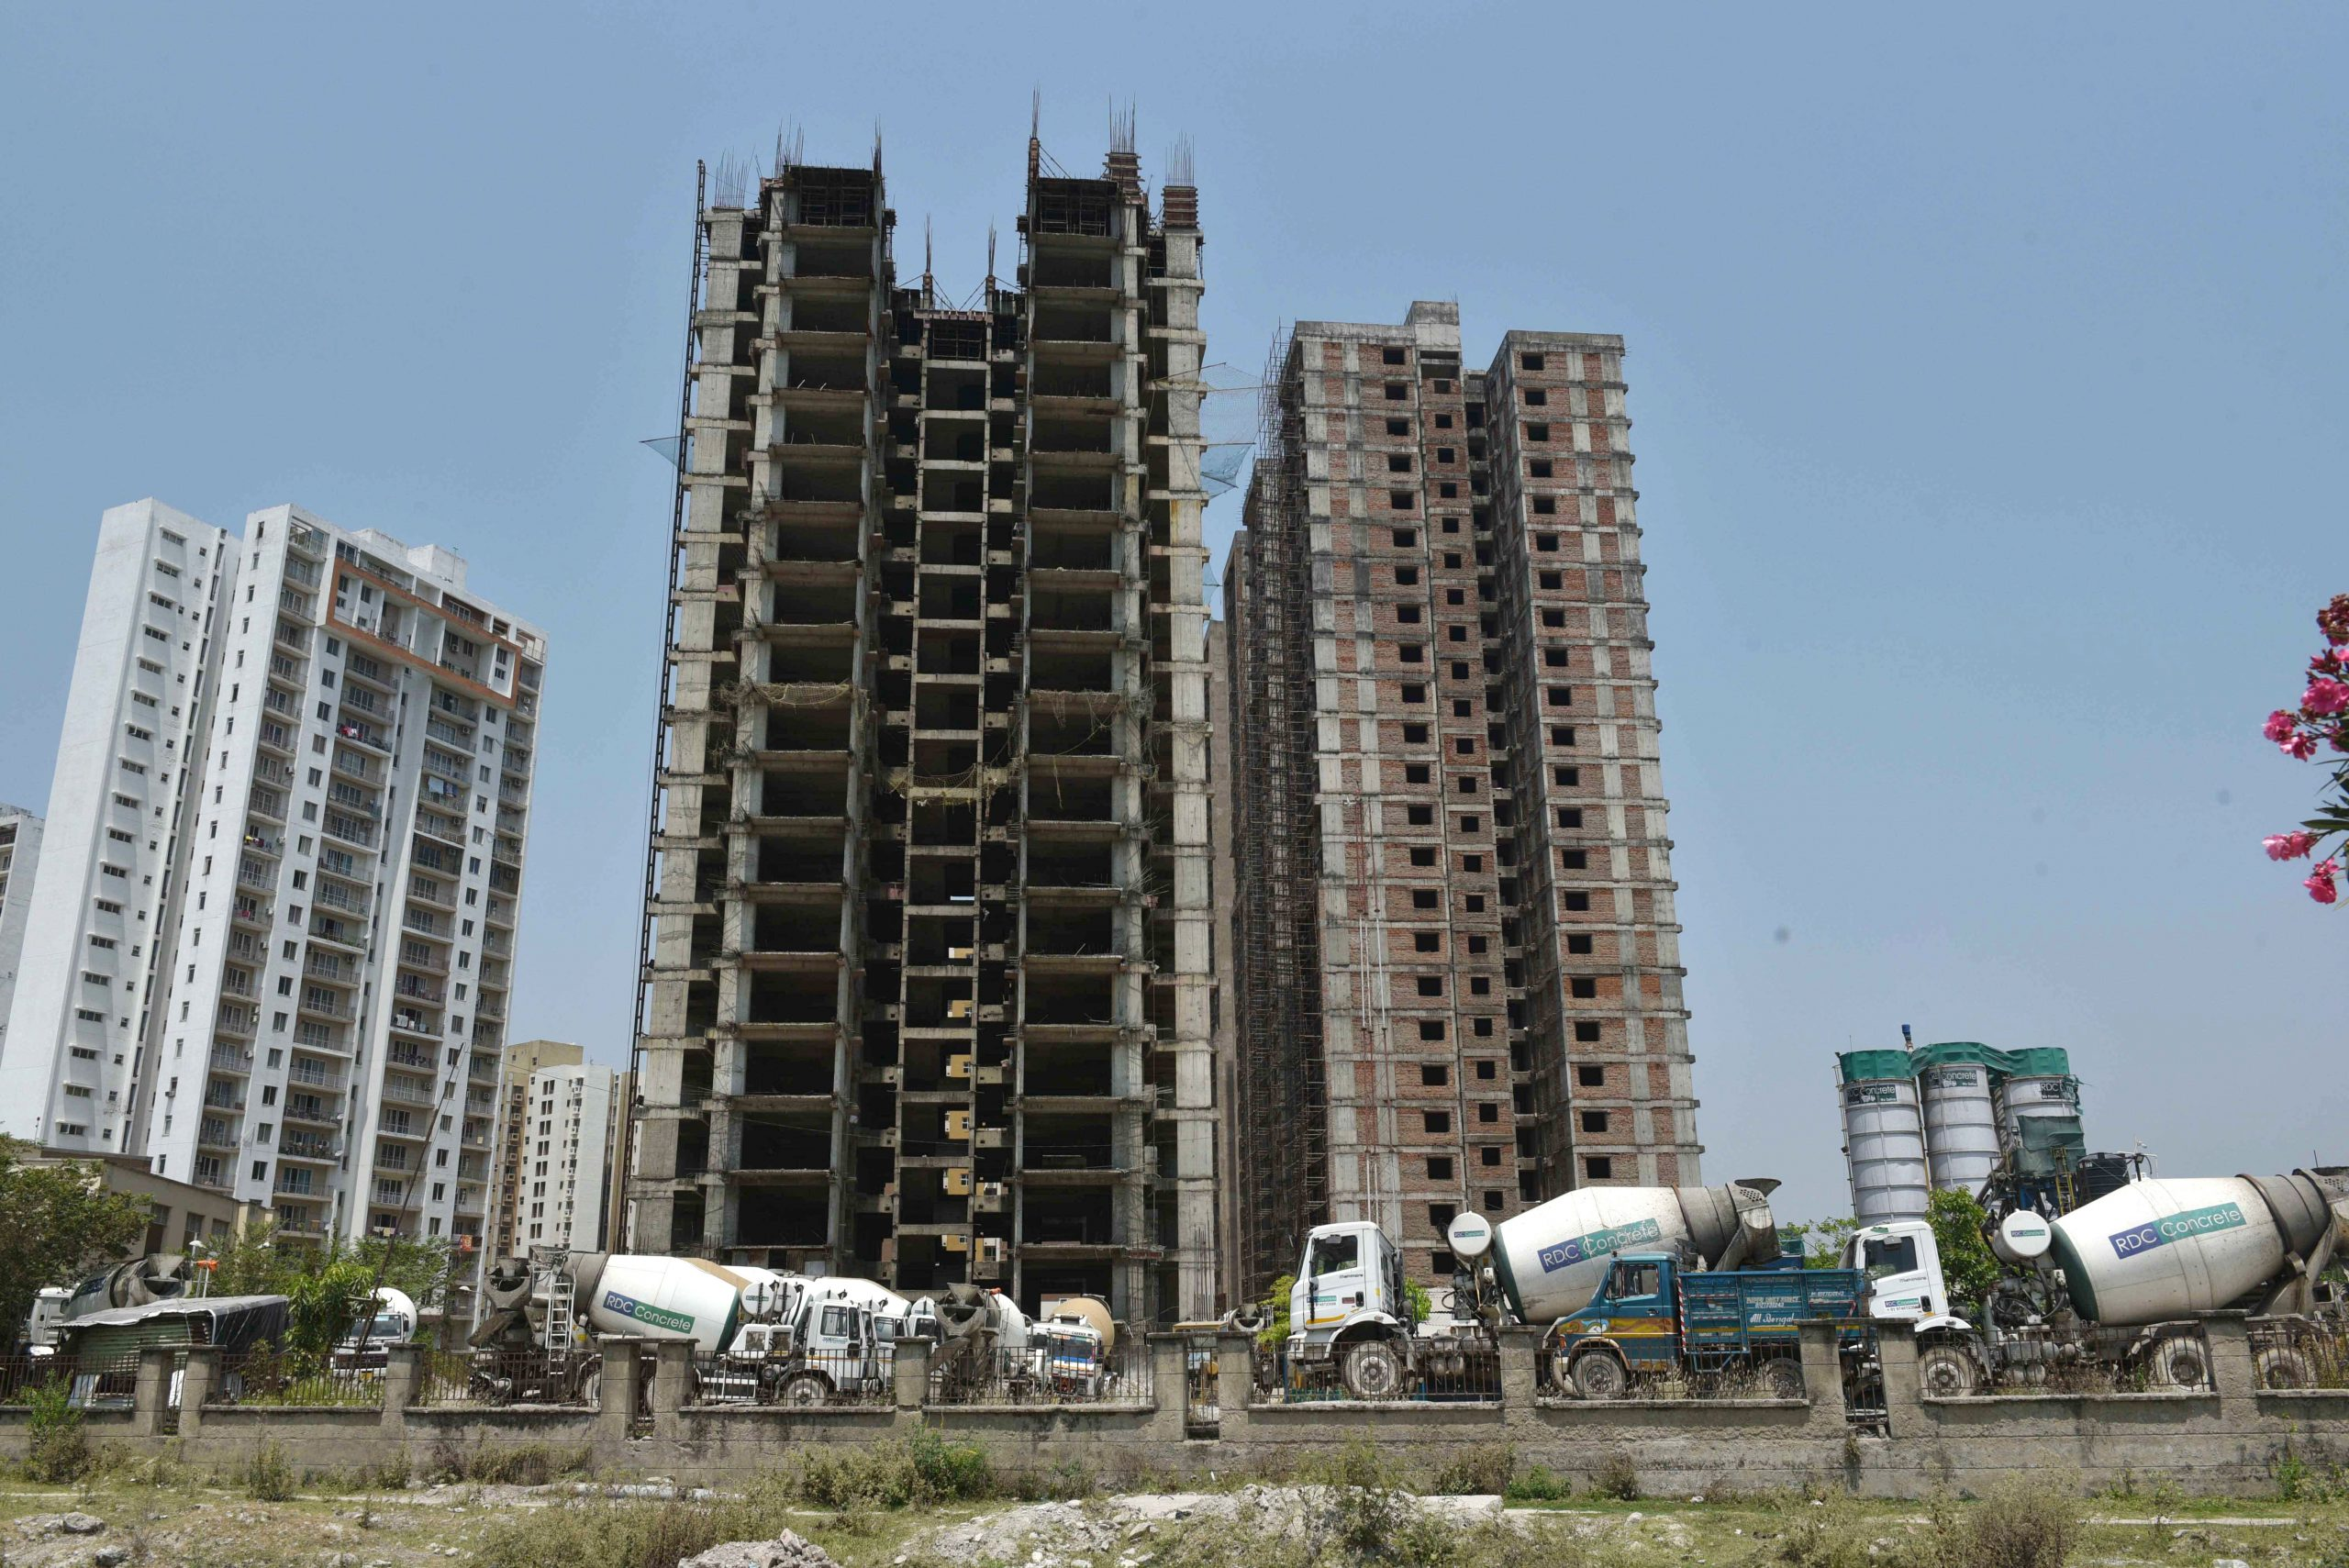 Concrete mixing machines line up at the construction site for high-rise buildings on April 10 in Kolkata, India.